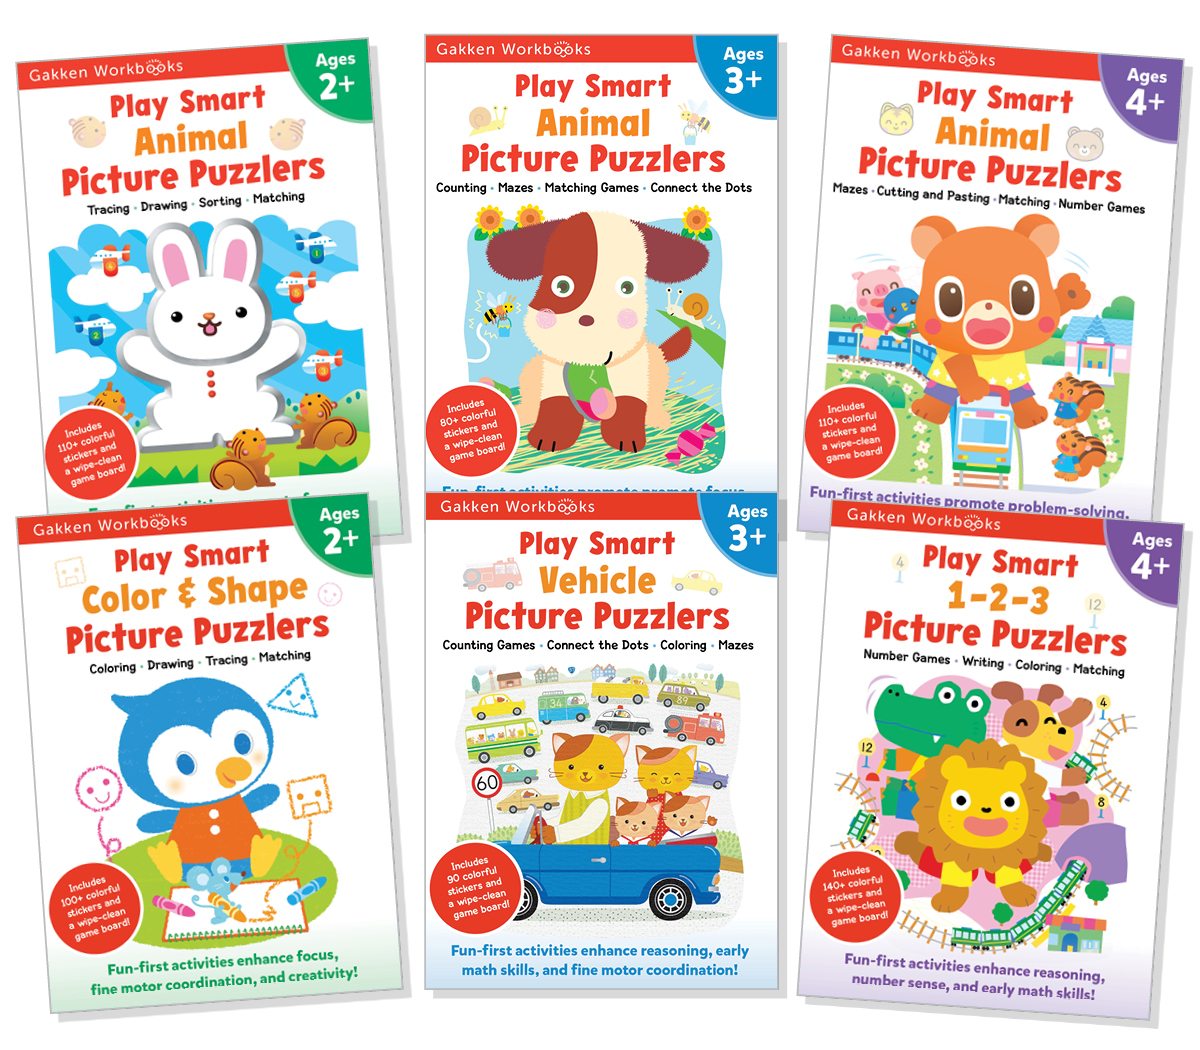 Summer Learning with Gakken Play Smart Workbooks